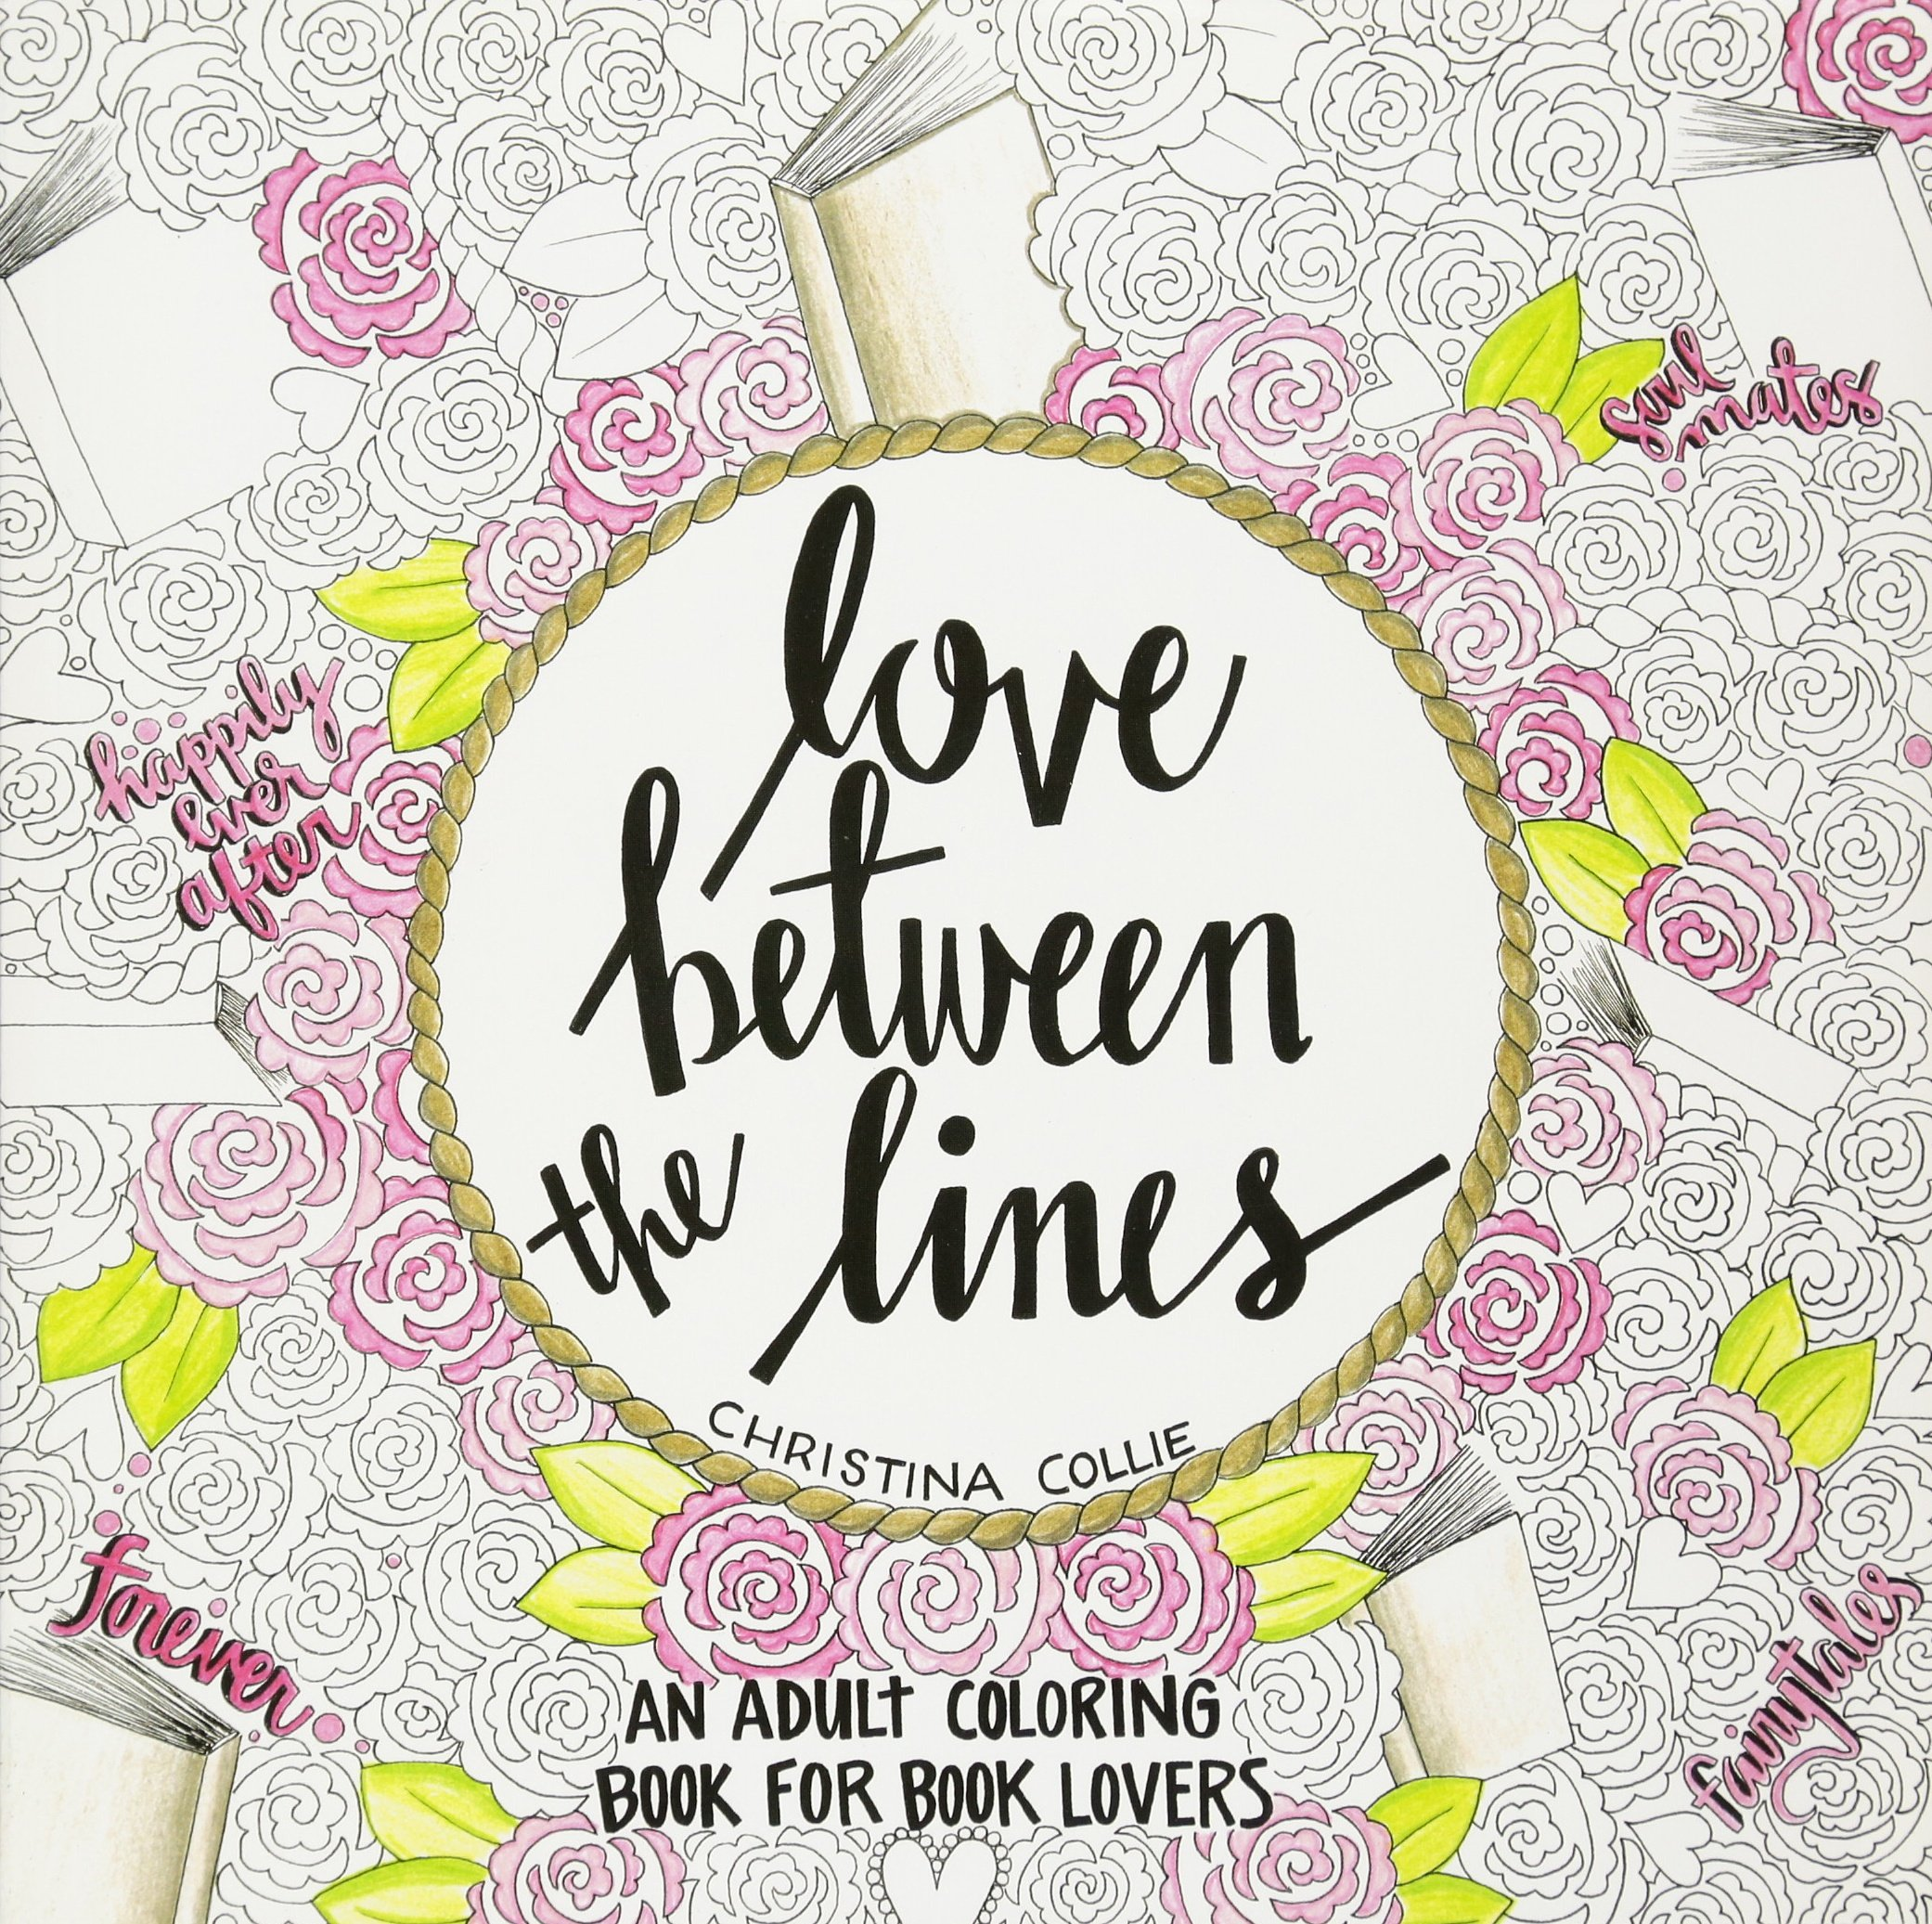 Love Between The Lines An Adult Coloring Book For Lovers Christina Collie 9781455598687 Amazon Books